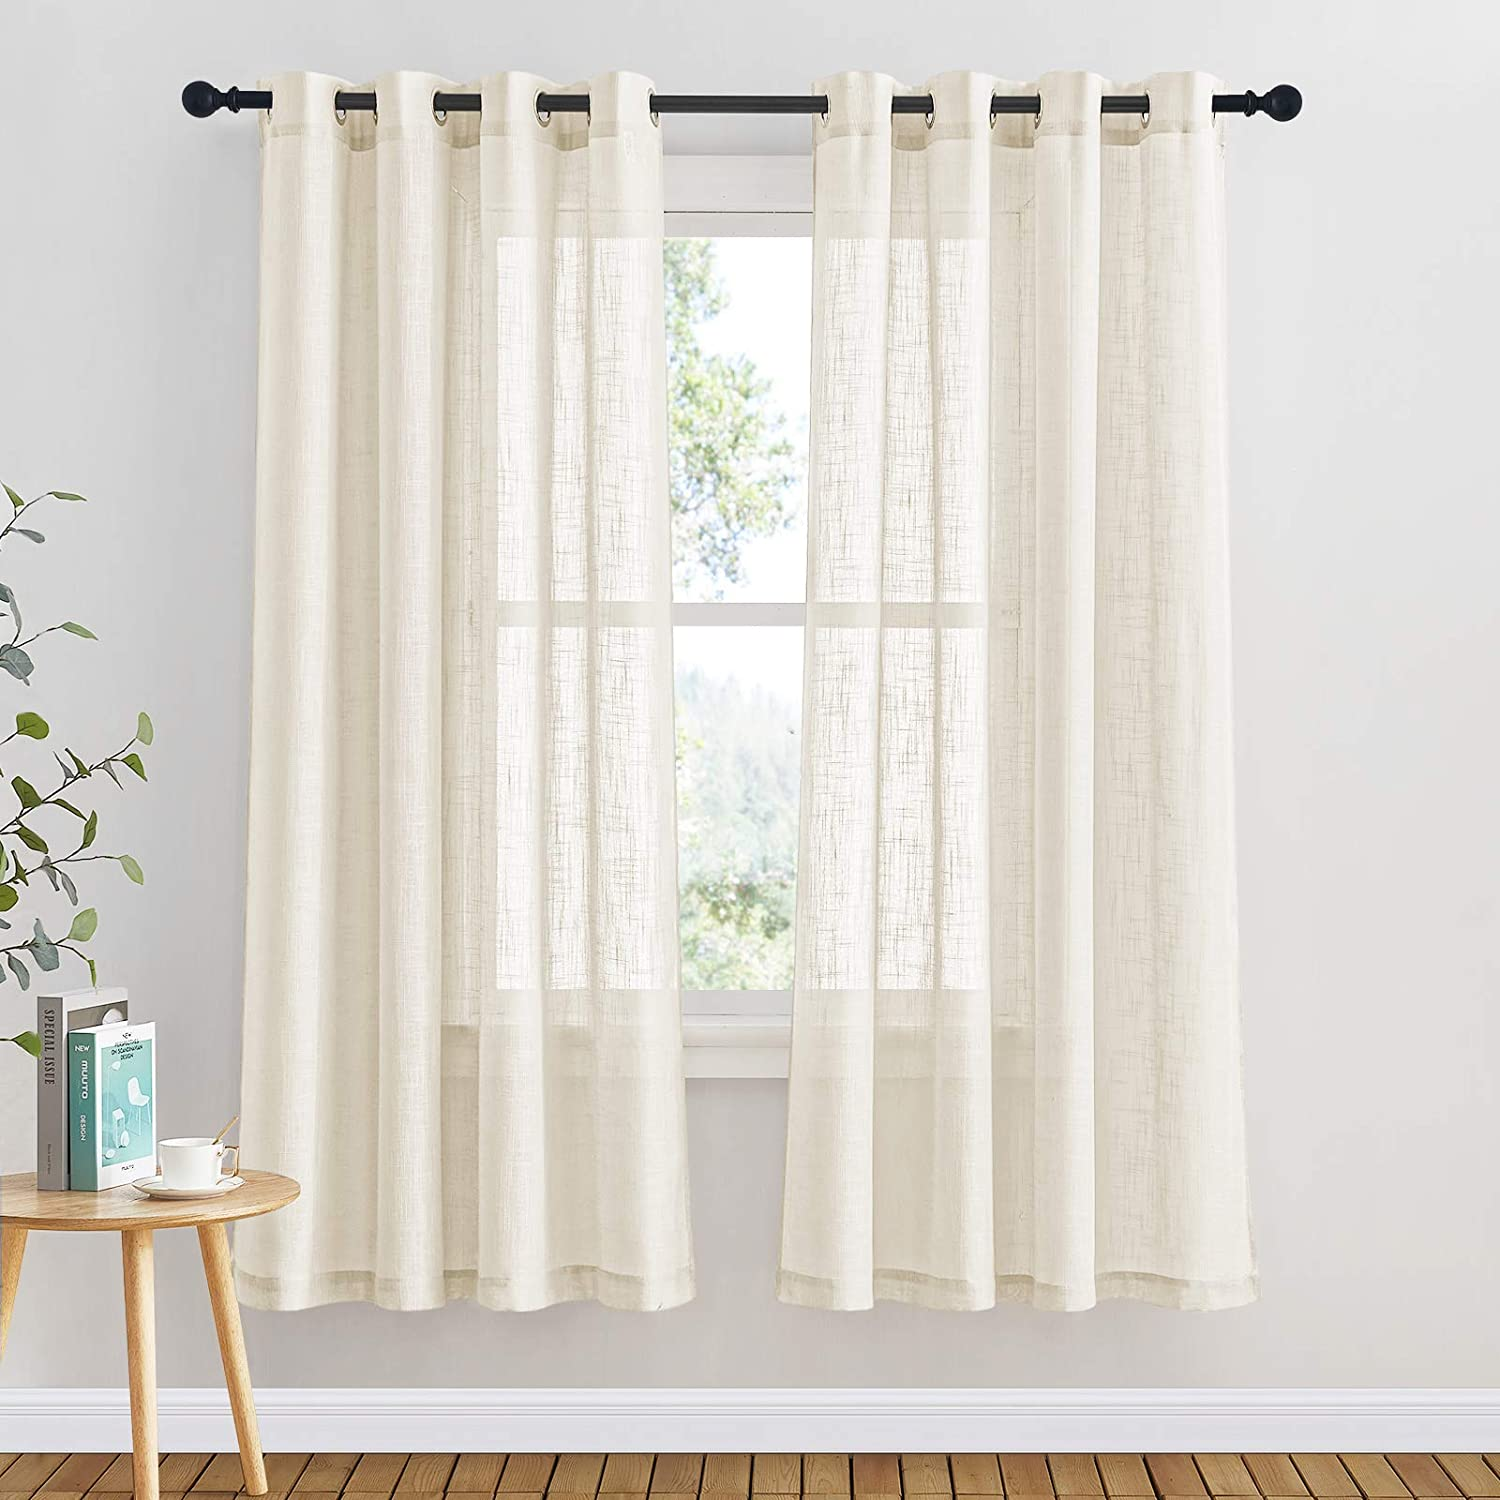 """PONY DANCE Semi Voile Curtains - Linen Look Translucent Net Voile Curtain with Eyelets Light Filter & Privacy Protected for Bedroom/Living Room, Set of 2, 52-inch W by 63-inch L, Beige Cream 2x W52"""" X L63"""" Beige Cream"""